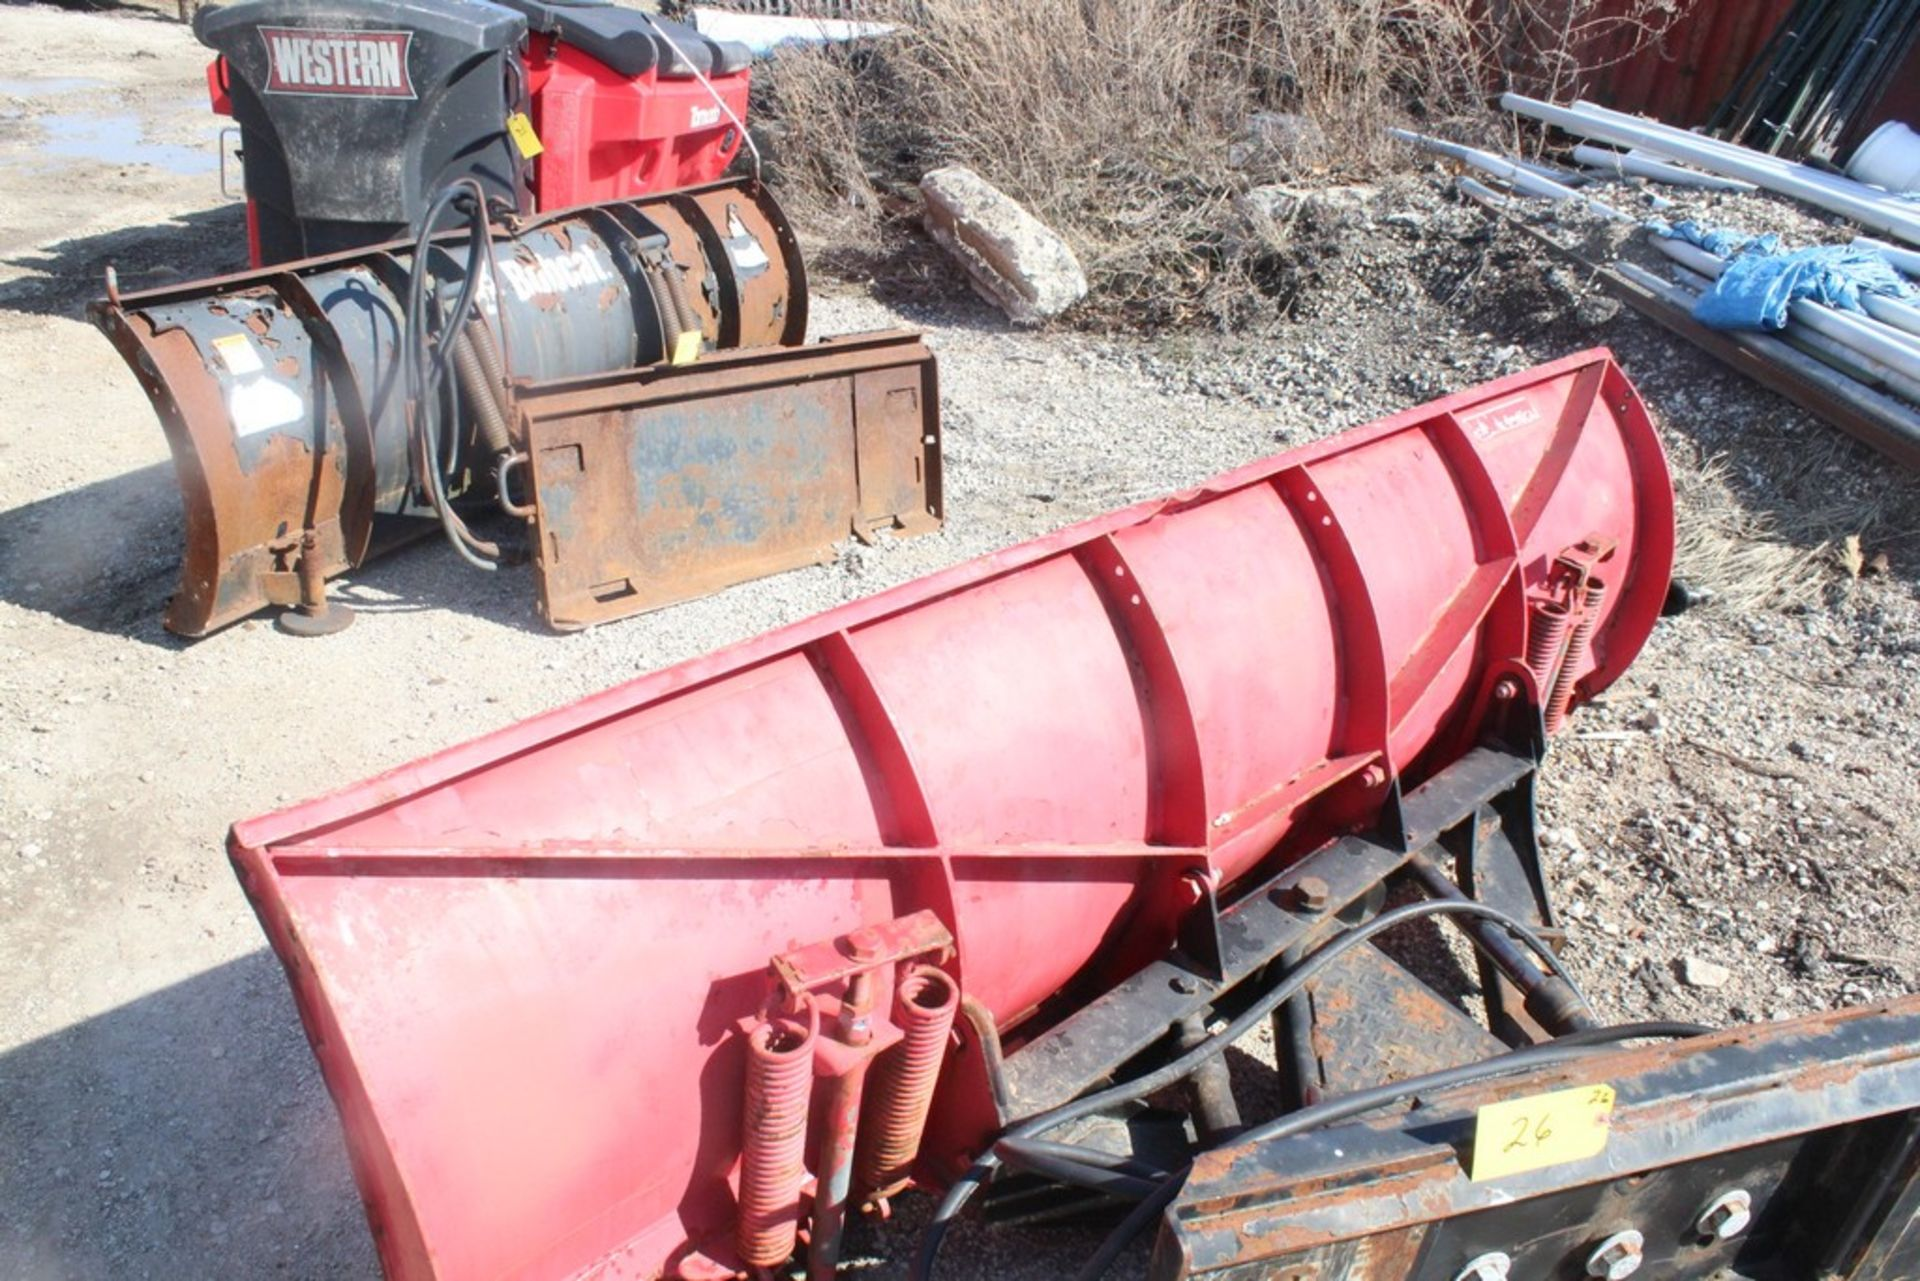 CUSTOM FABRICATED 96-IN. BOLT-TOGETHER HYDRAULIC SNOW PLOW ATTACHMENT, 96-IN. BLADE, TO FIT SKID - Image 2 of 4